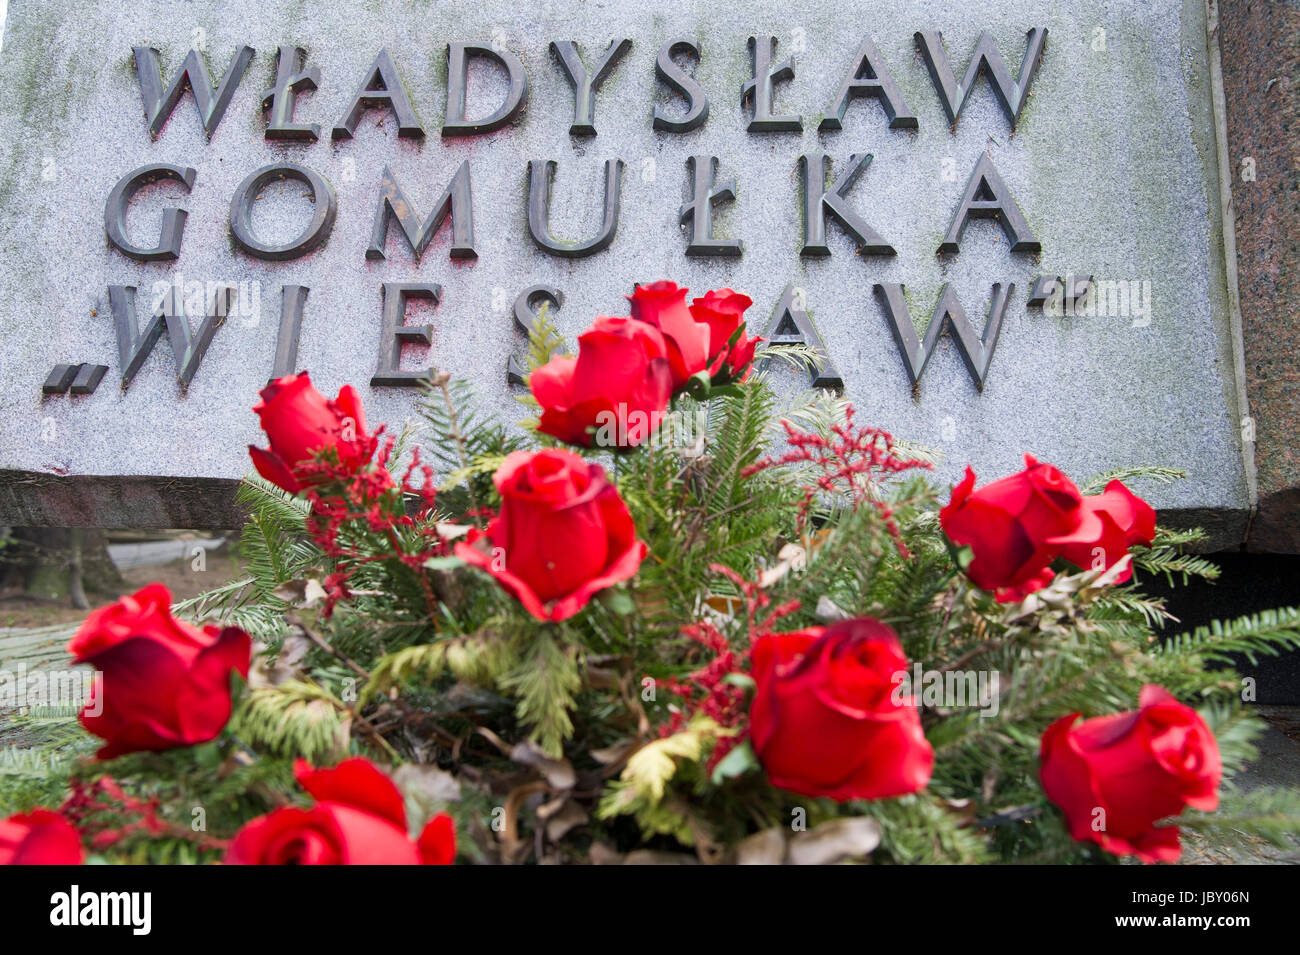 Tomb of Wladyslaw Gomulka, Polish Communist and leader of People`s Republic of Poland. Powazki Military Cemetery - Stock Image